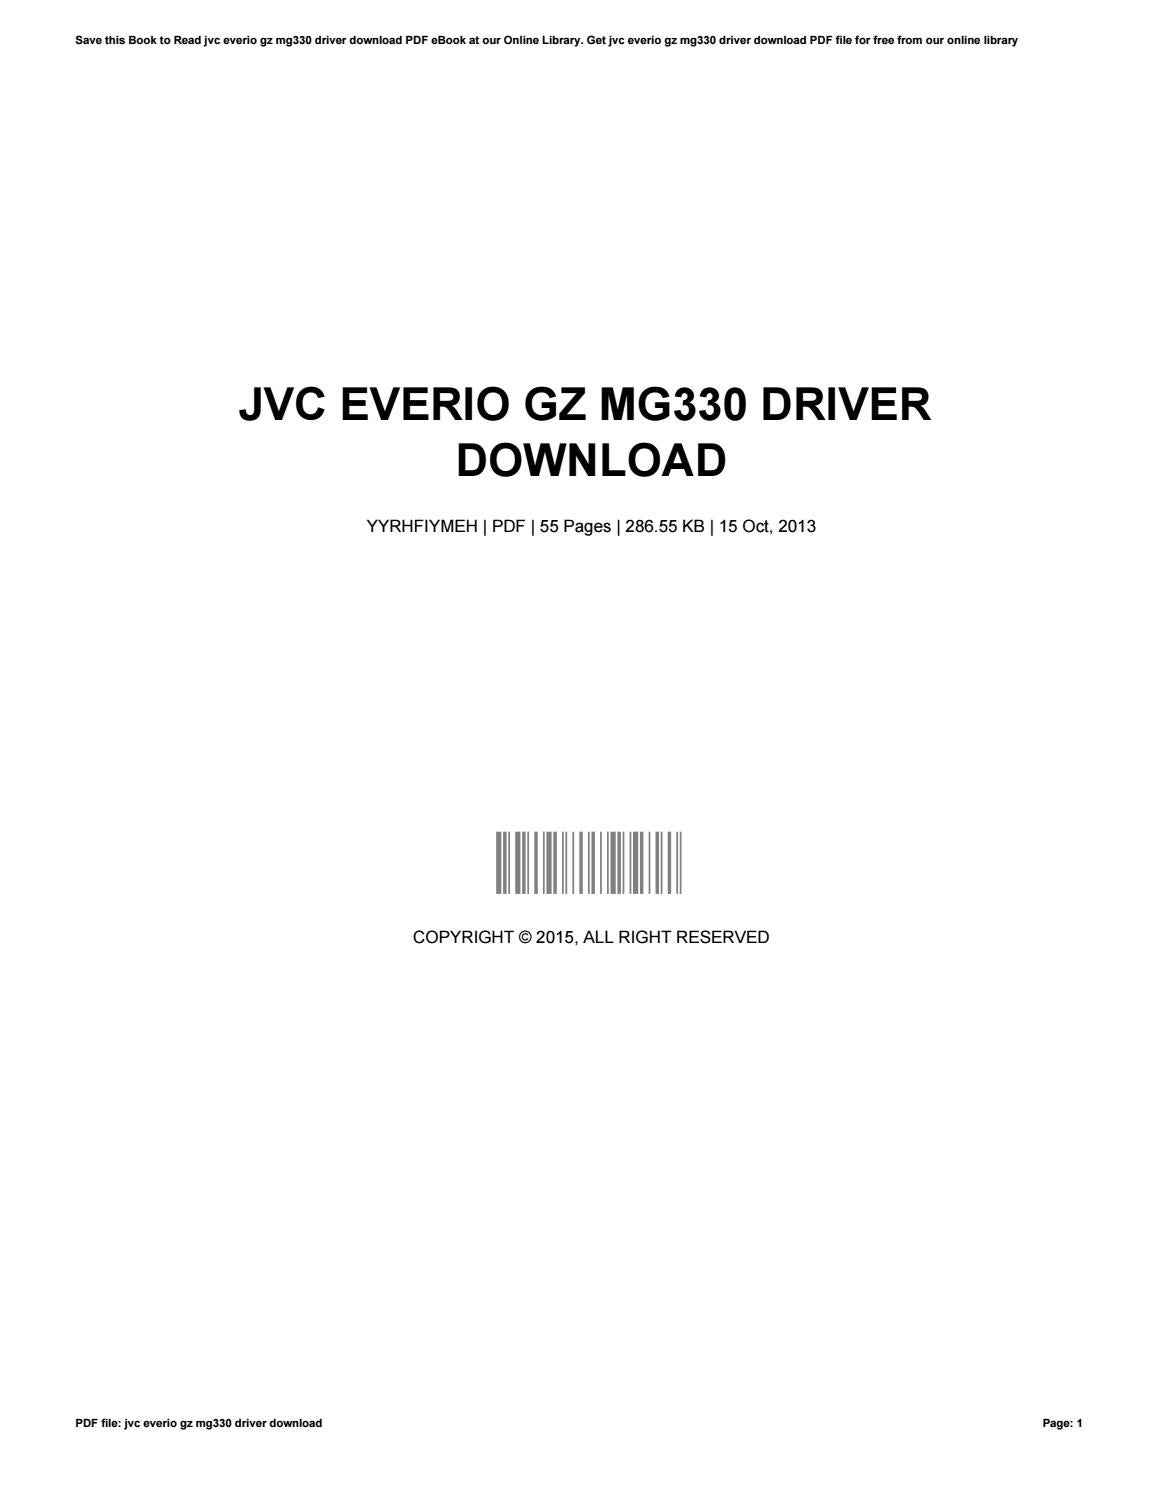 jvc everio gz mg330 manual pdf